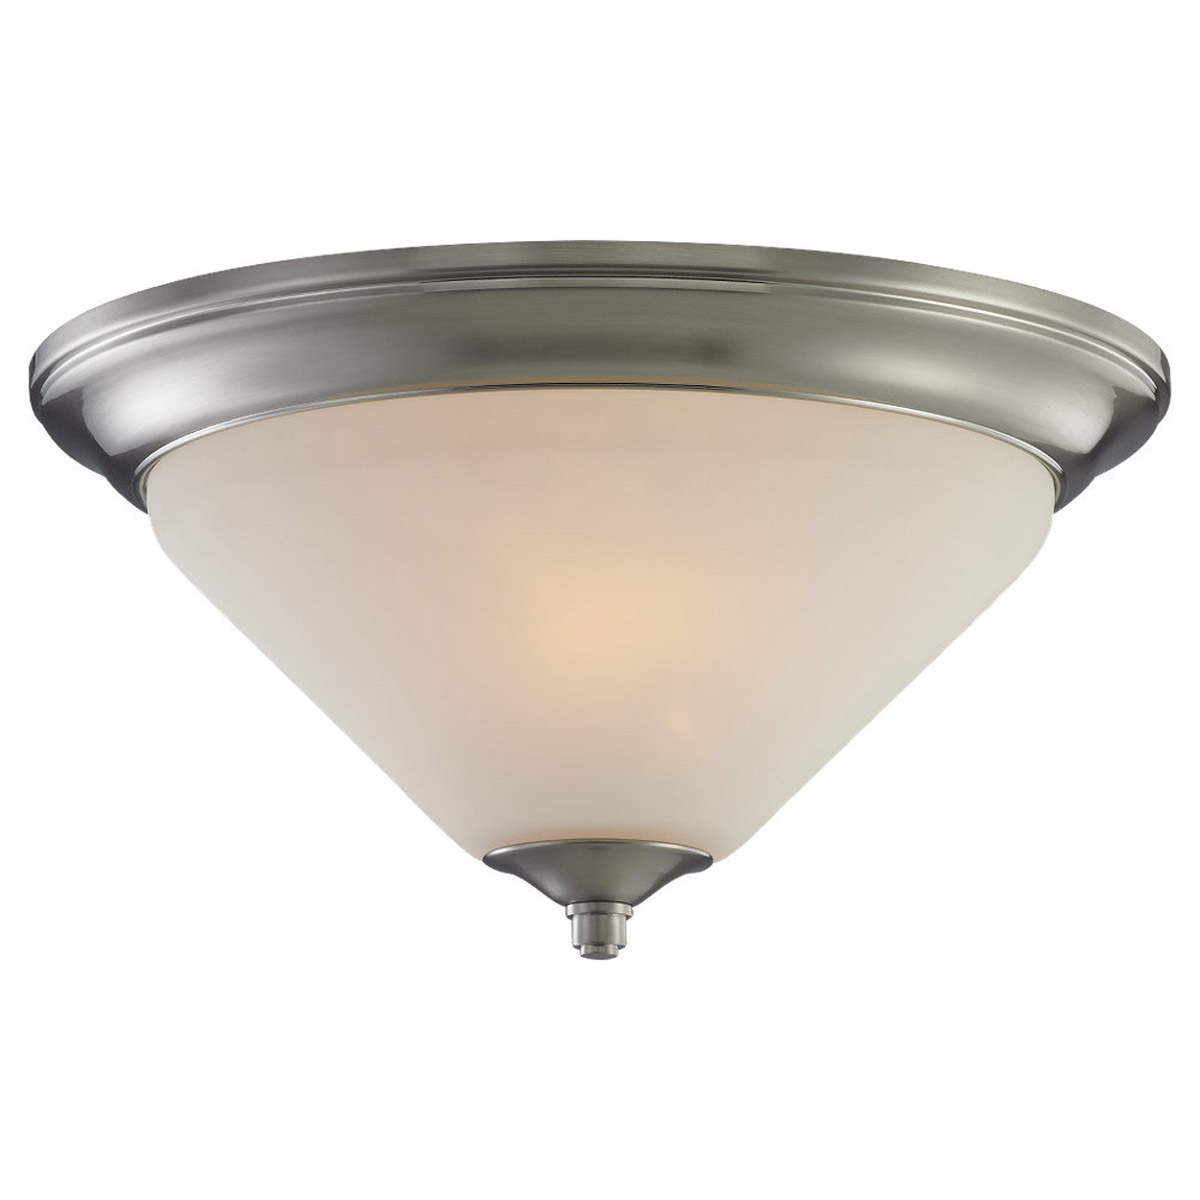 Sea Gull Lighting Belair 2 Light Flush Mount in Brushed Nickel 75790-962